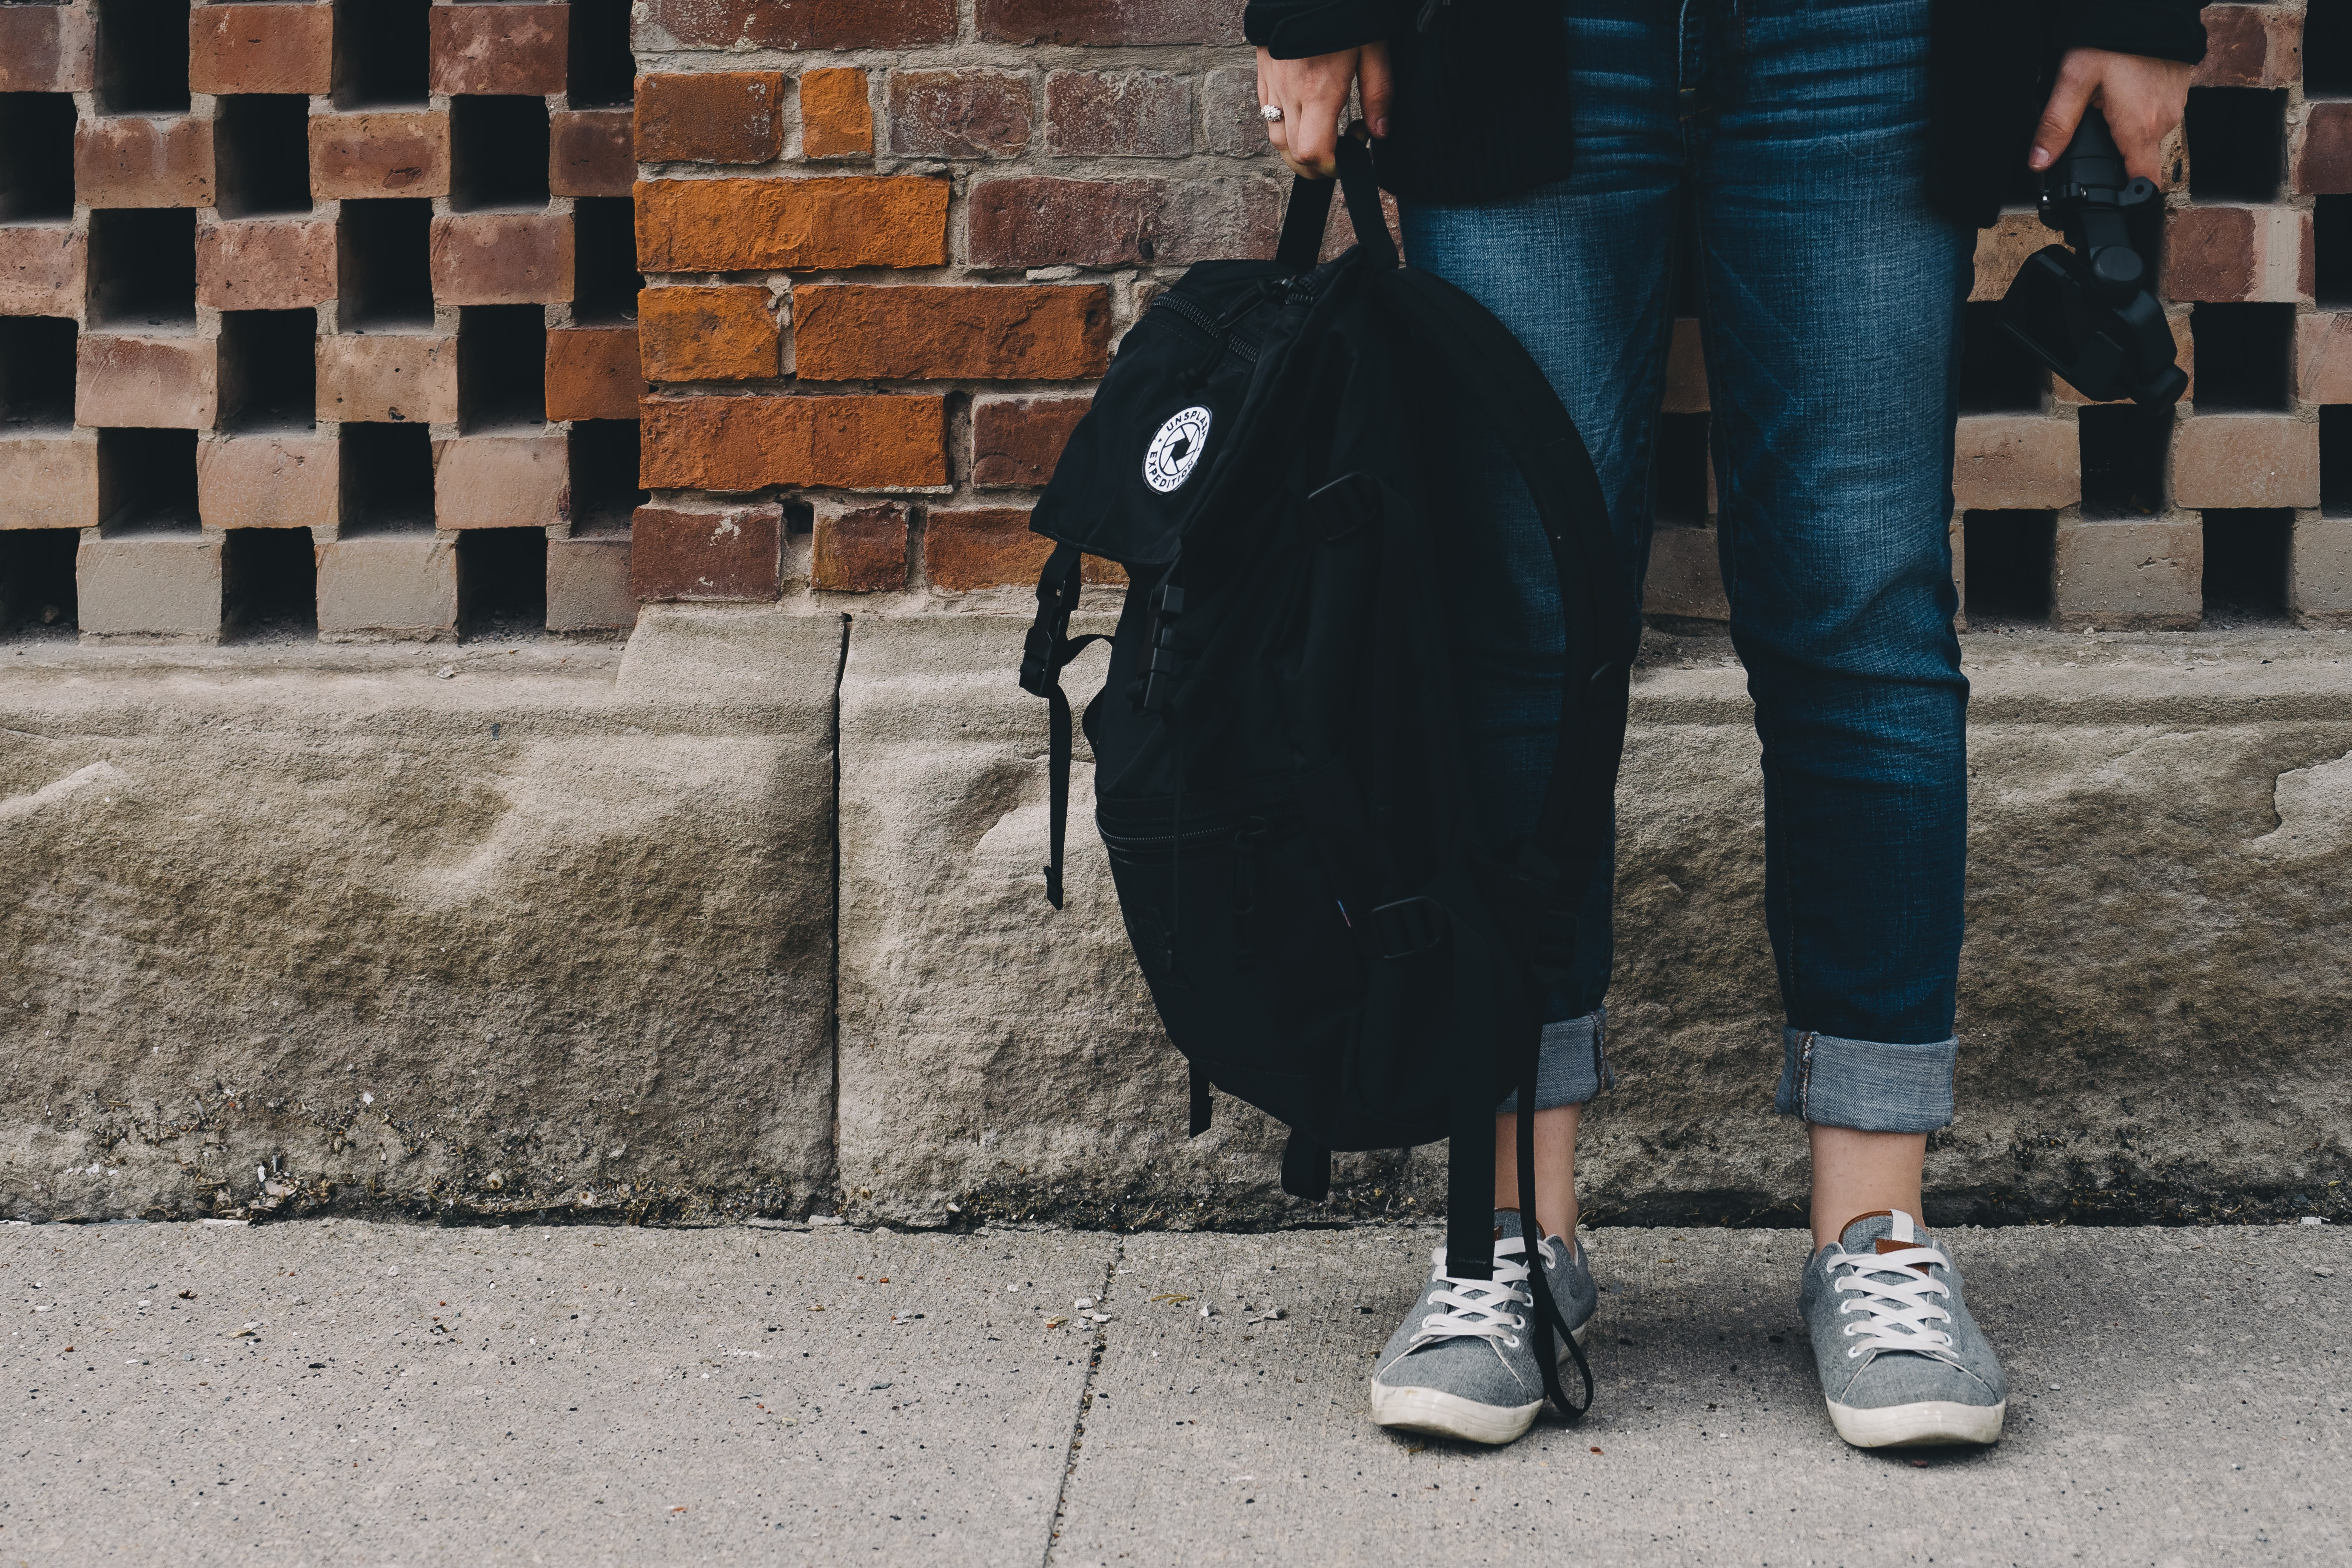 Young person holding a backpack.